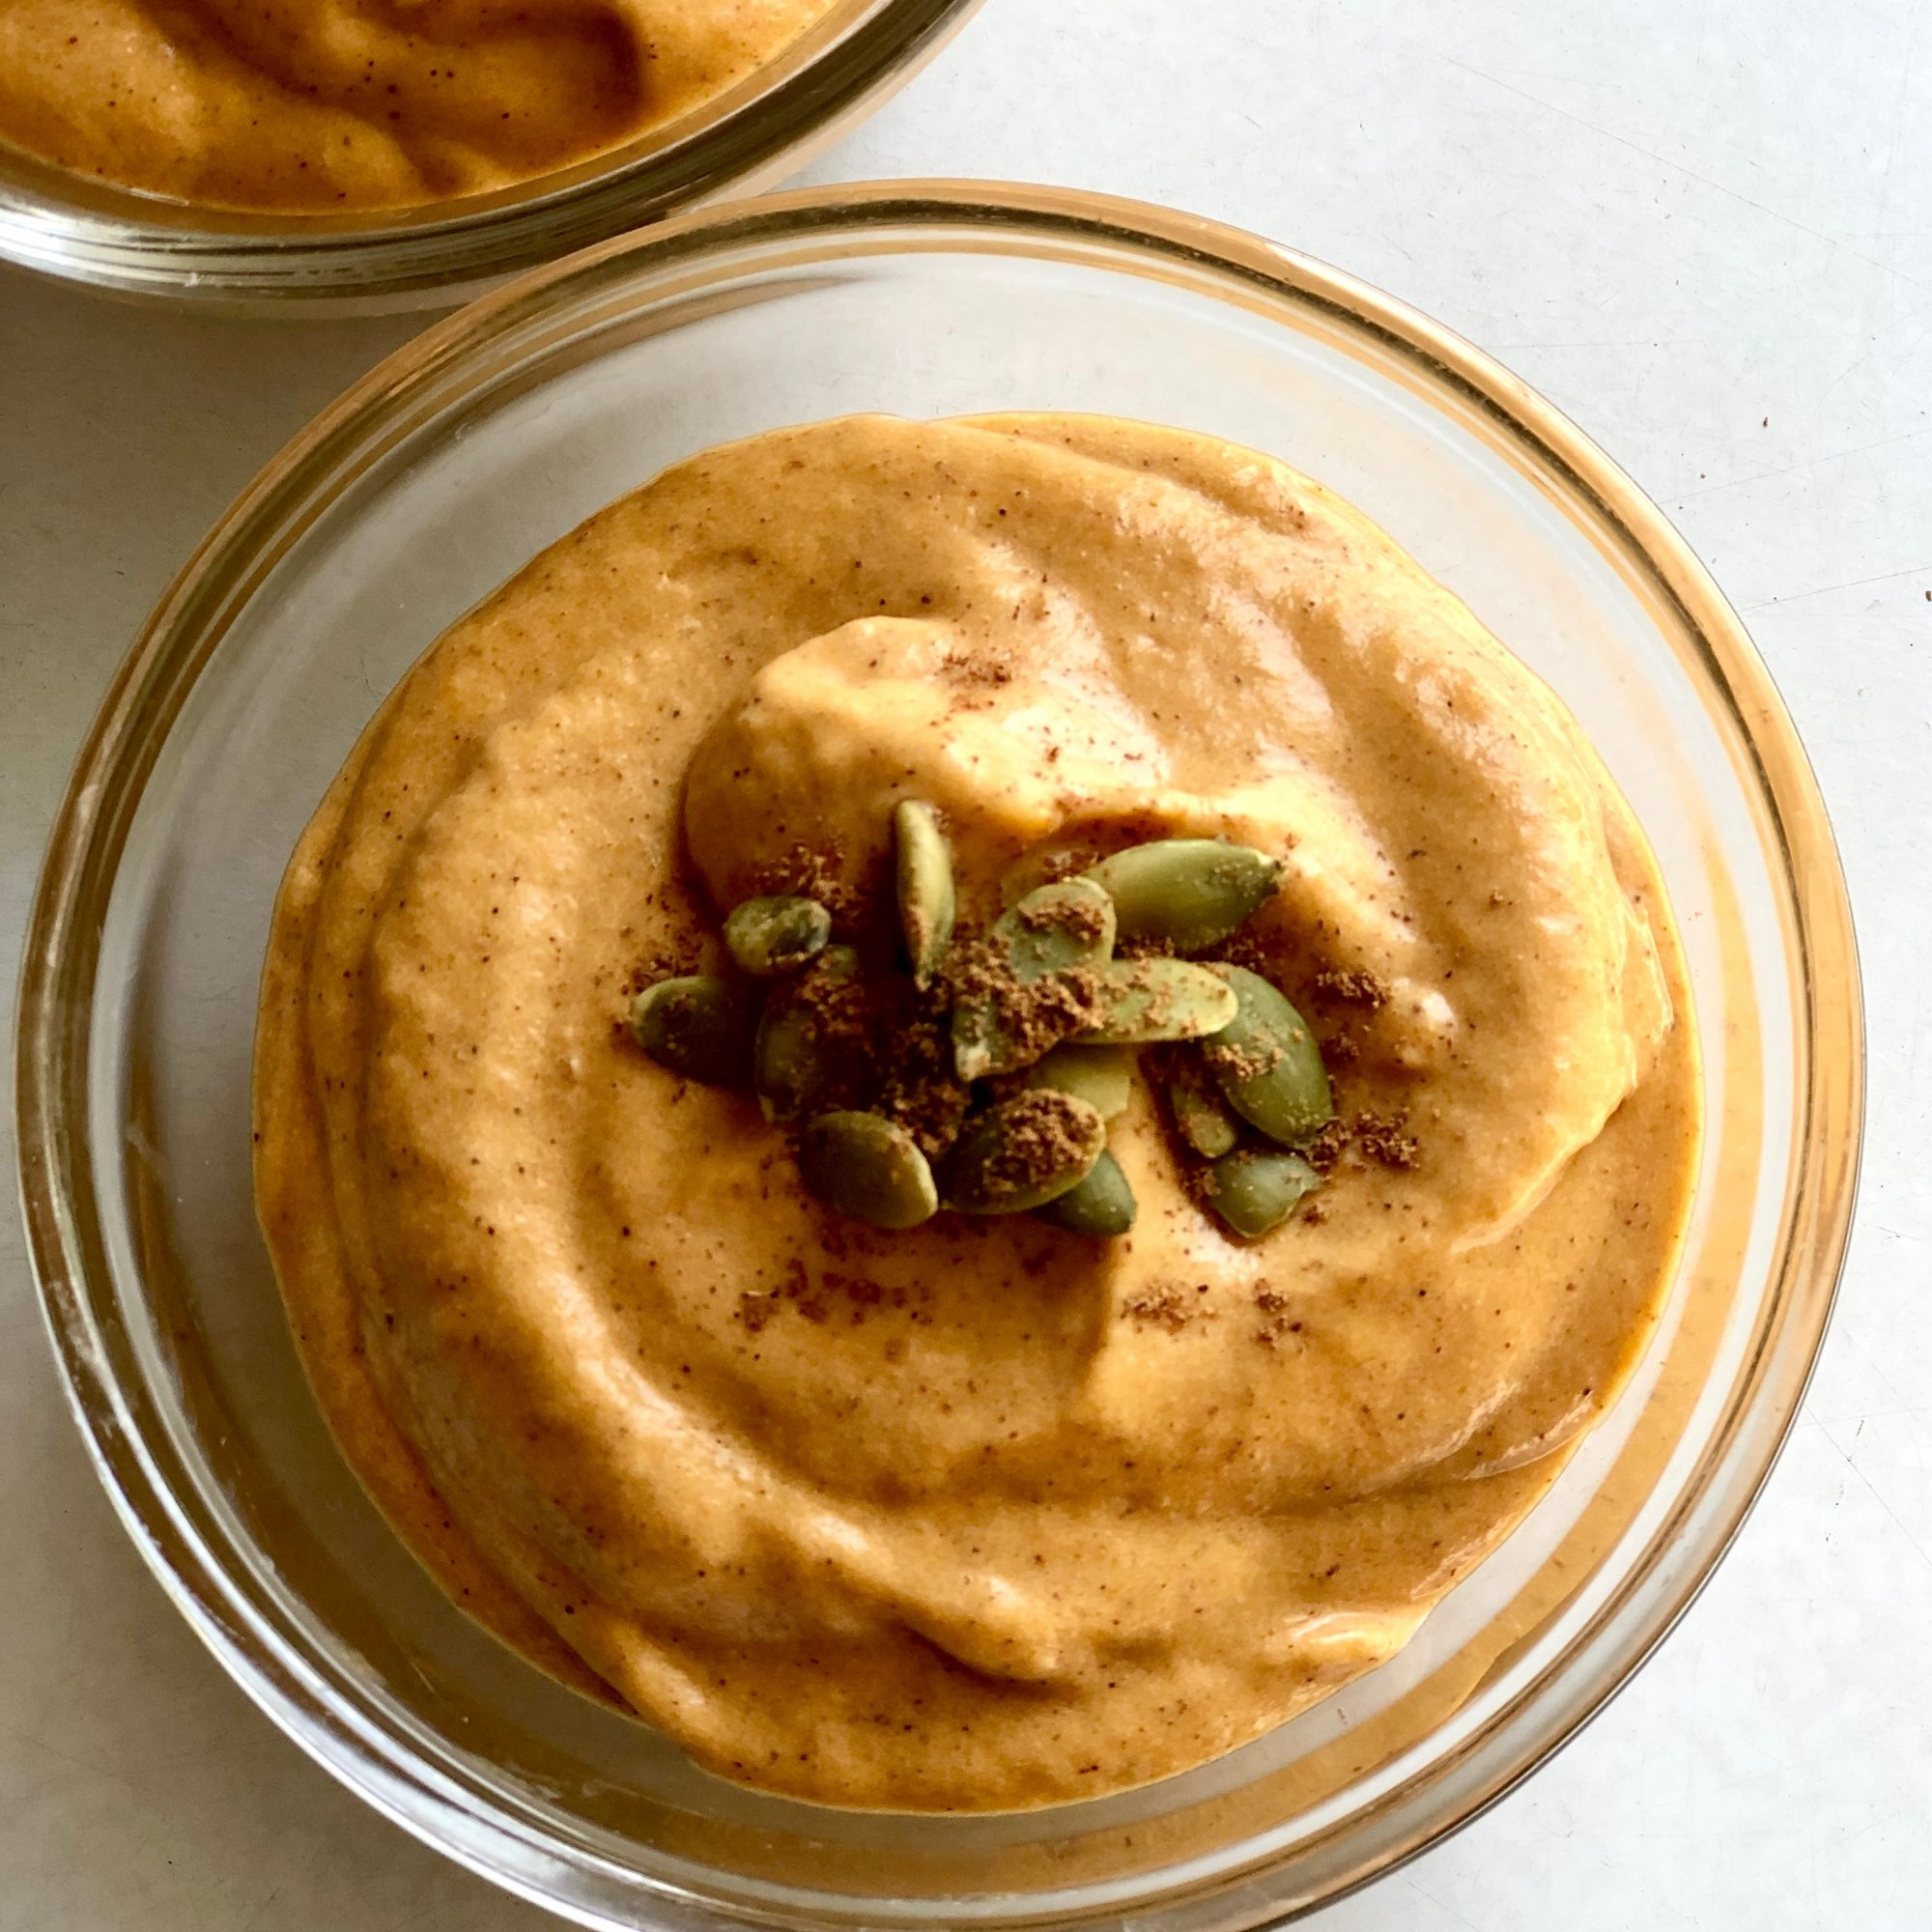 single serving of homemade Skinny Pumpkin Pie Pudding garnished with pumpkin seeds and grated nutmeg